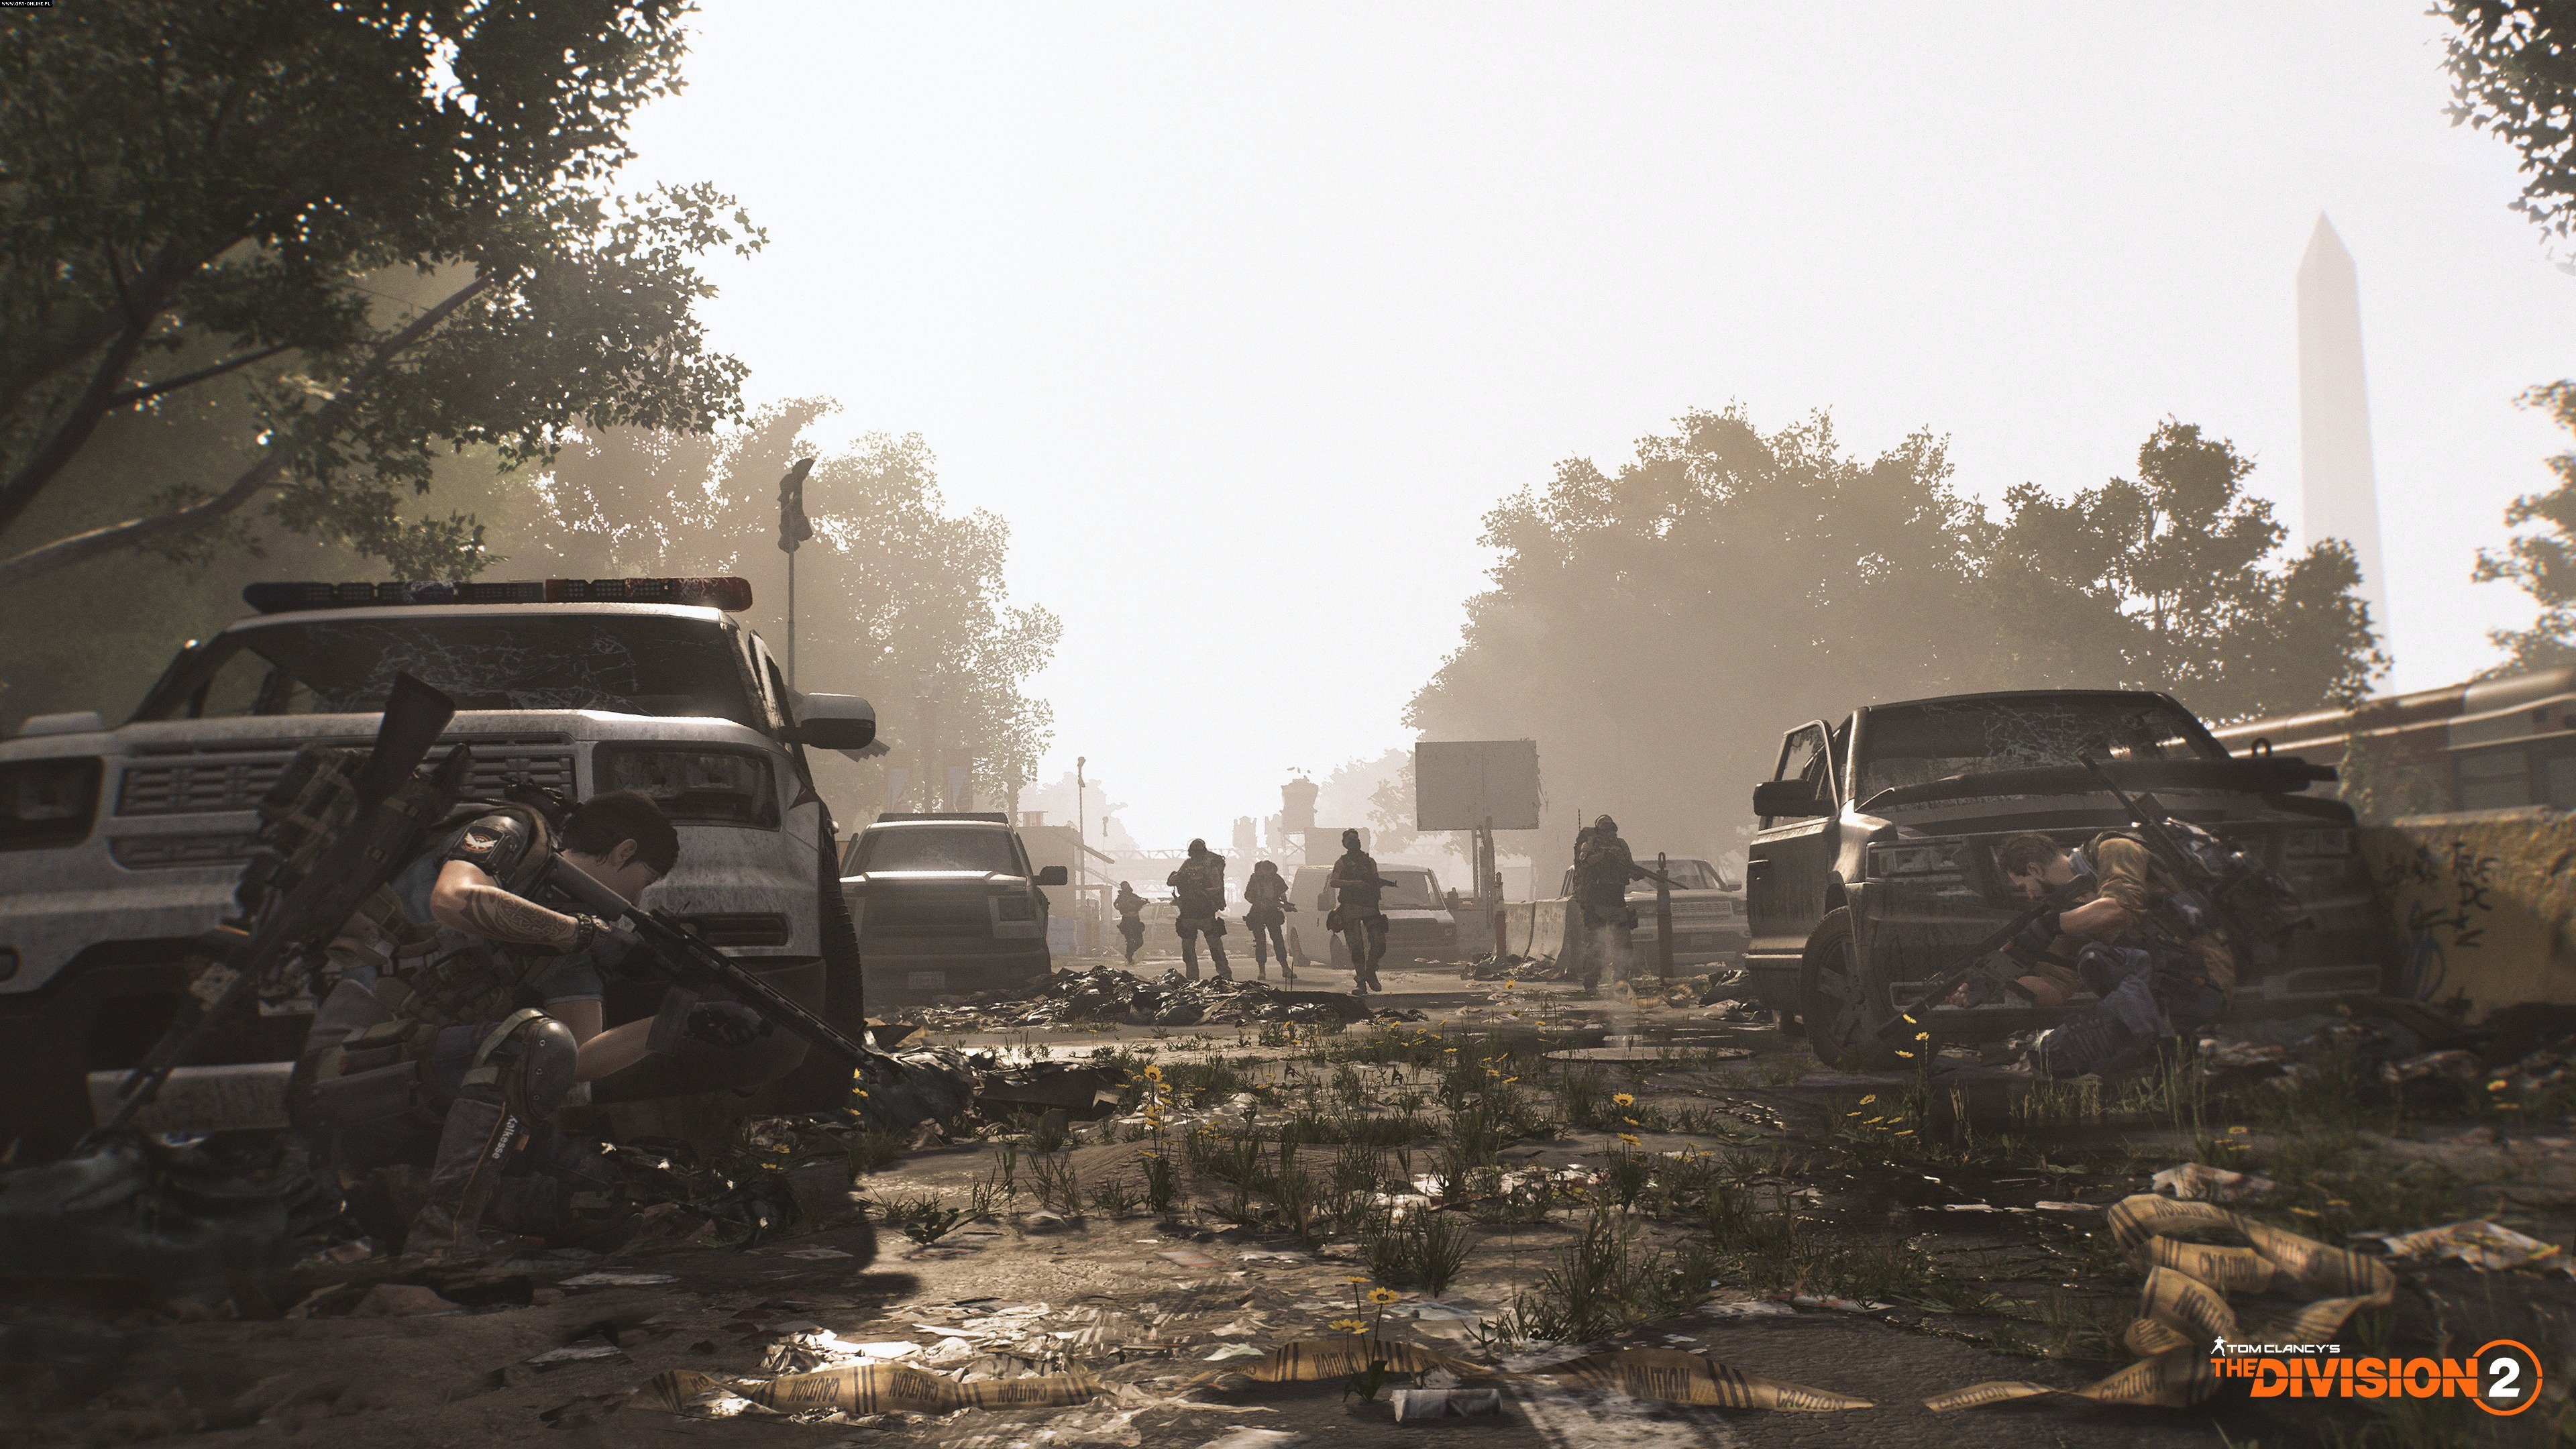 Tom Clancy's The Division 2 PC, PS4, XONE Gry Screen 43/59, Massive Entertainment / Ubisoft Massive, Ubisoft